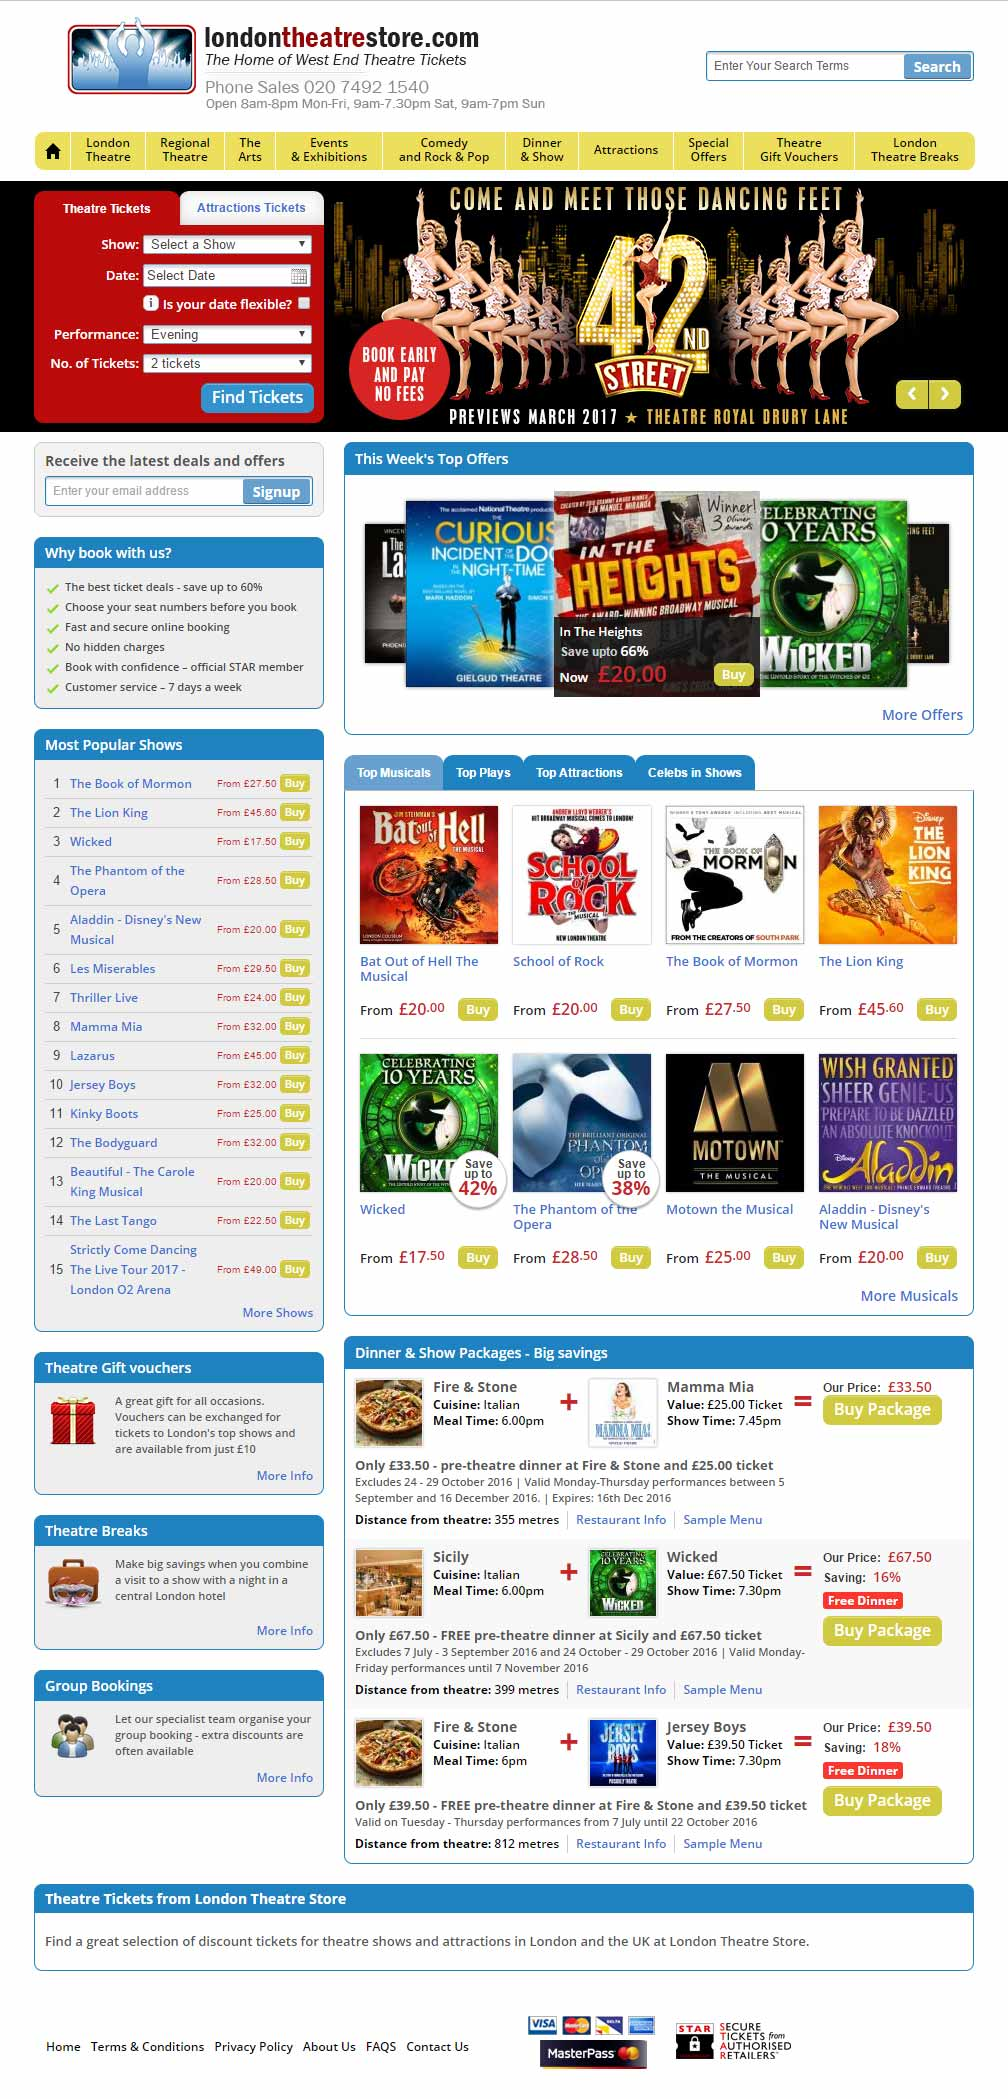 Website Design London Theatre Store